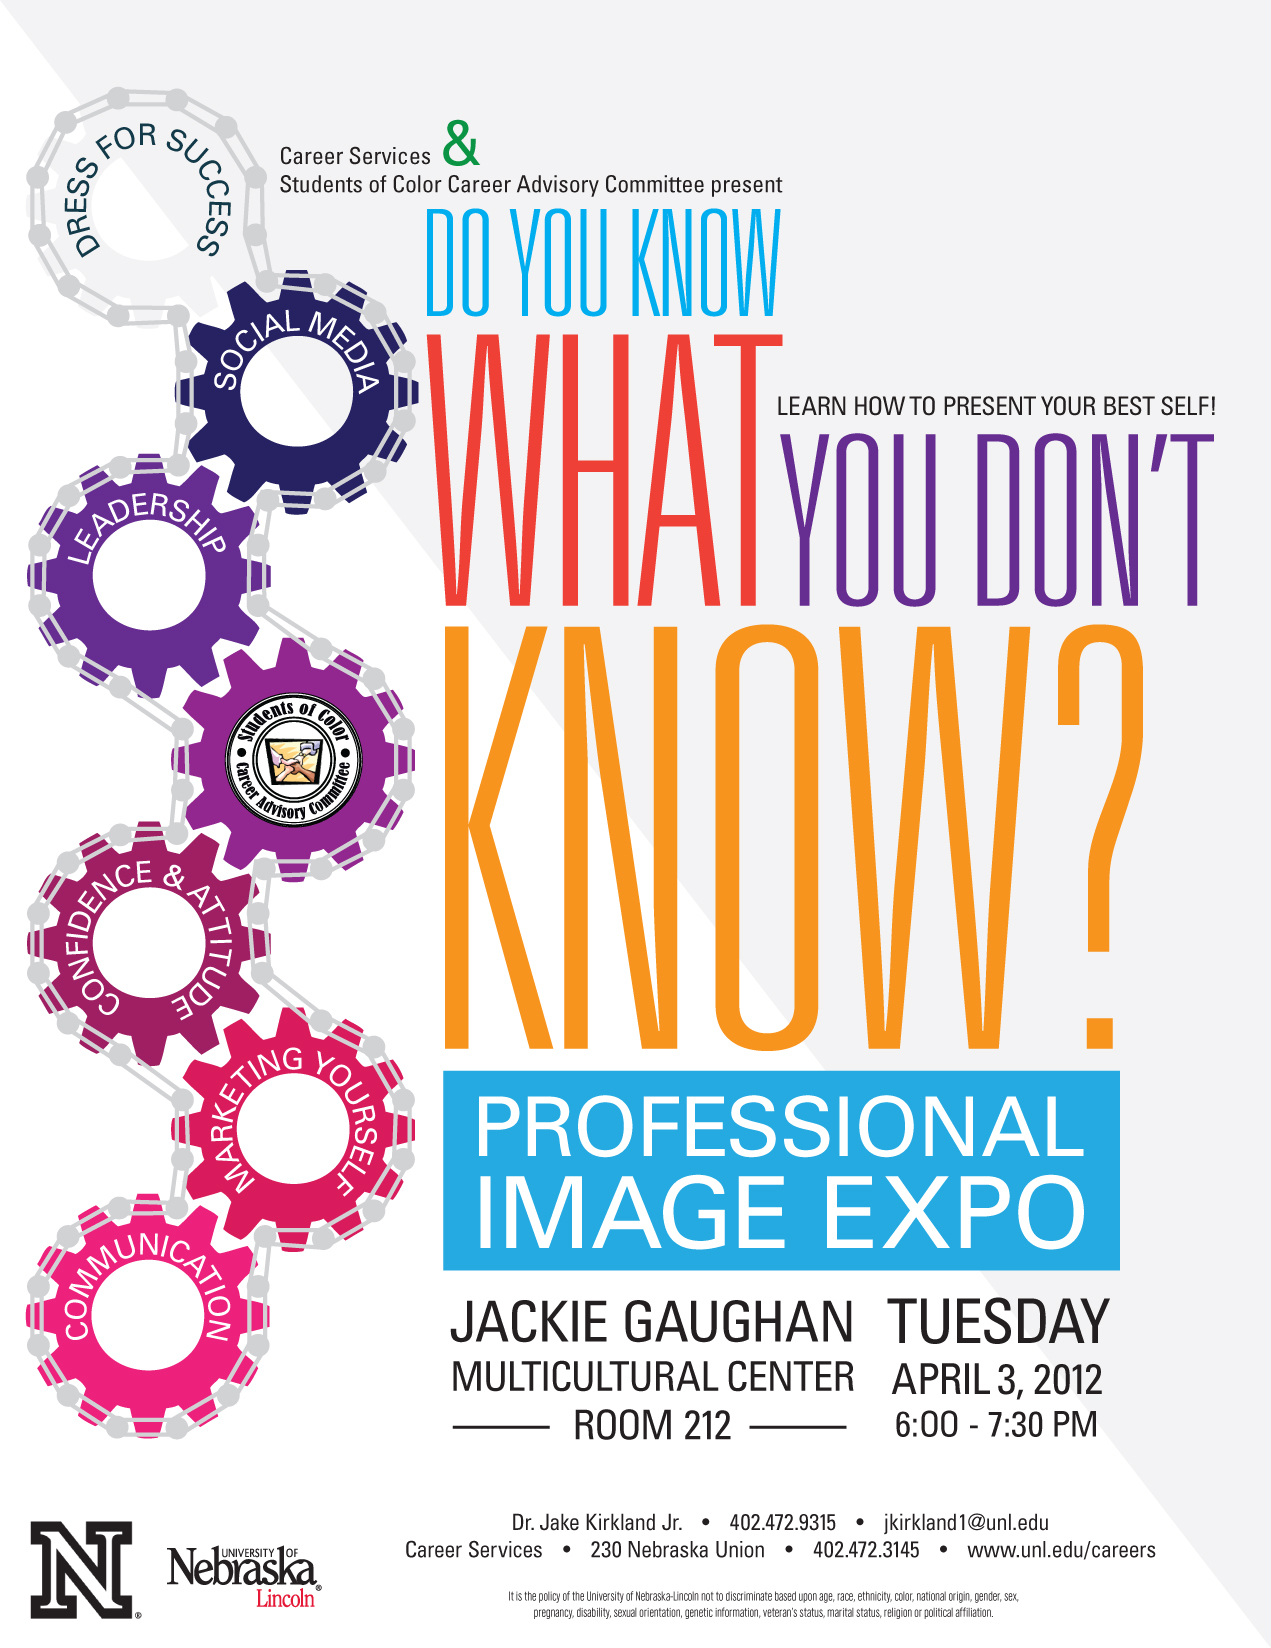 Professional Image Expo